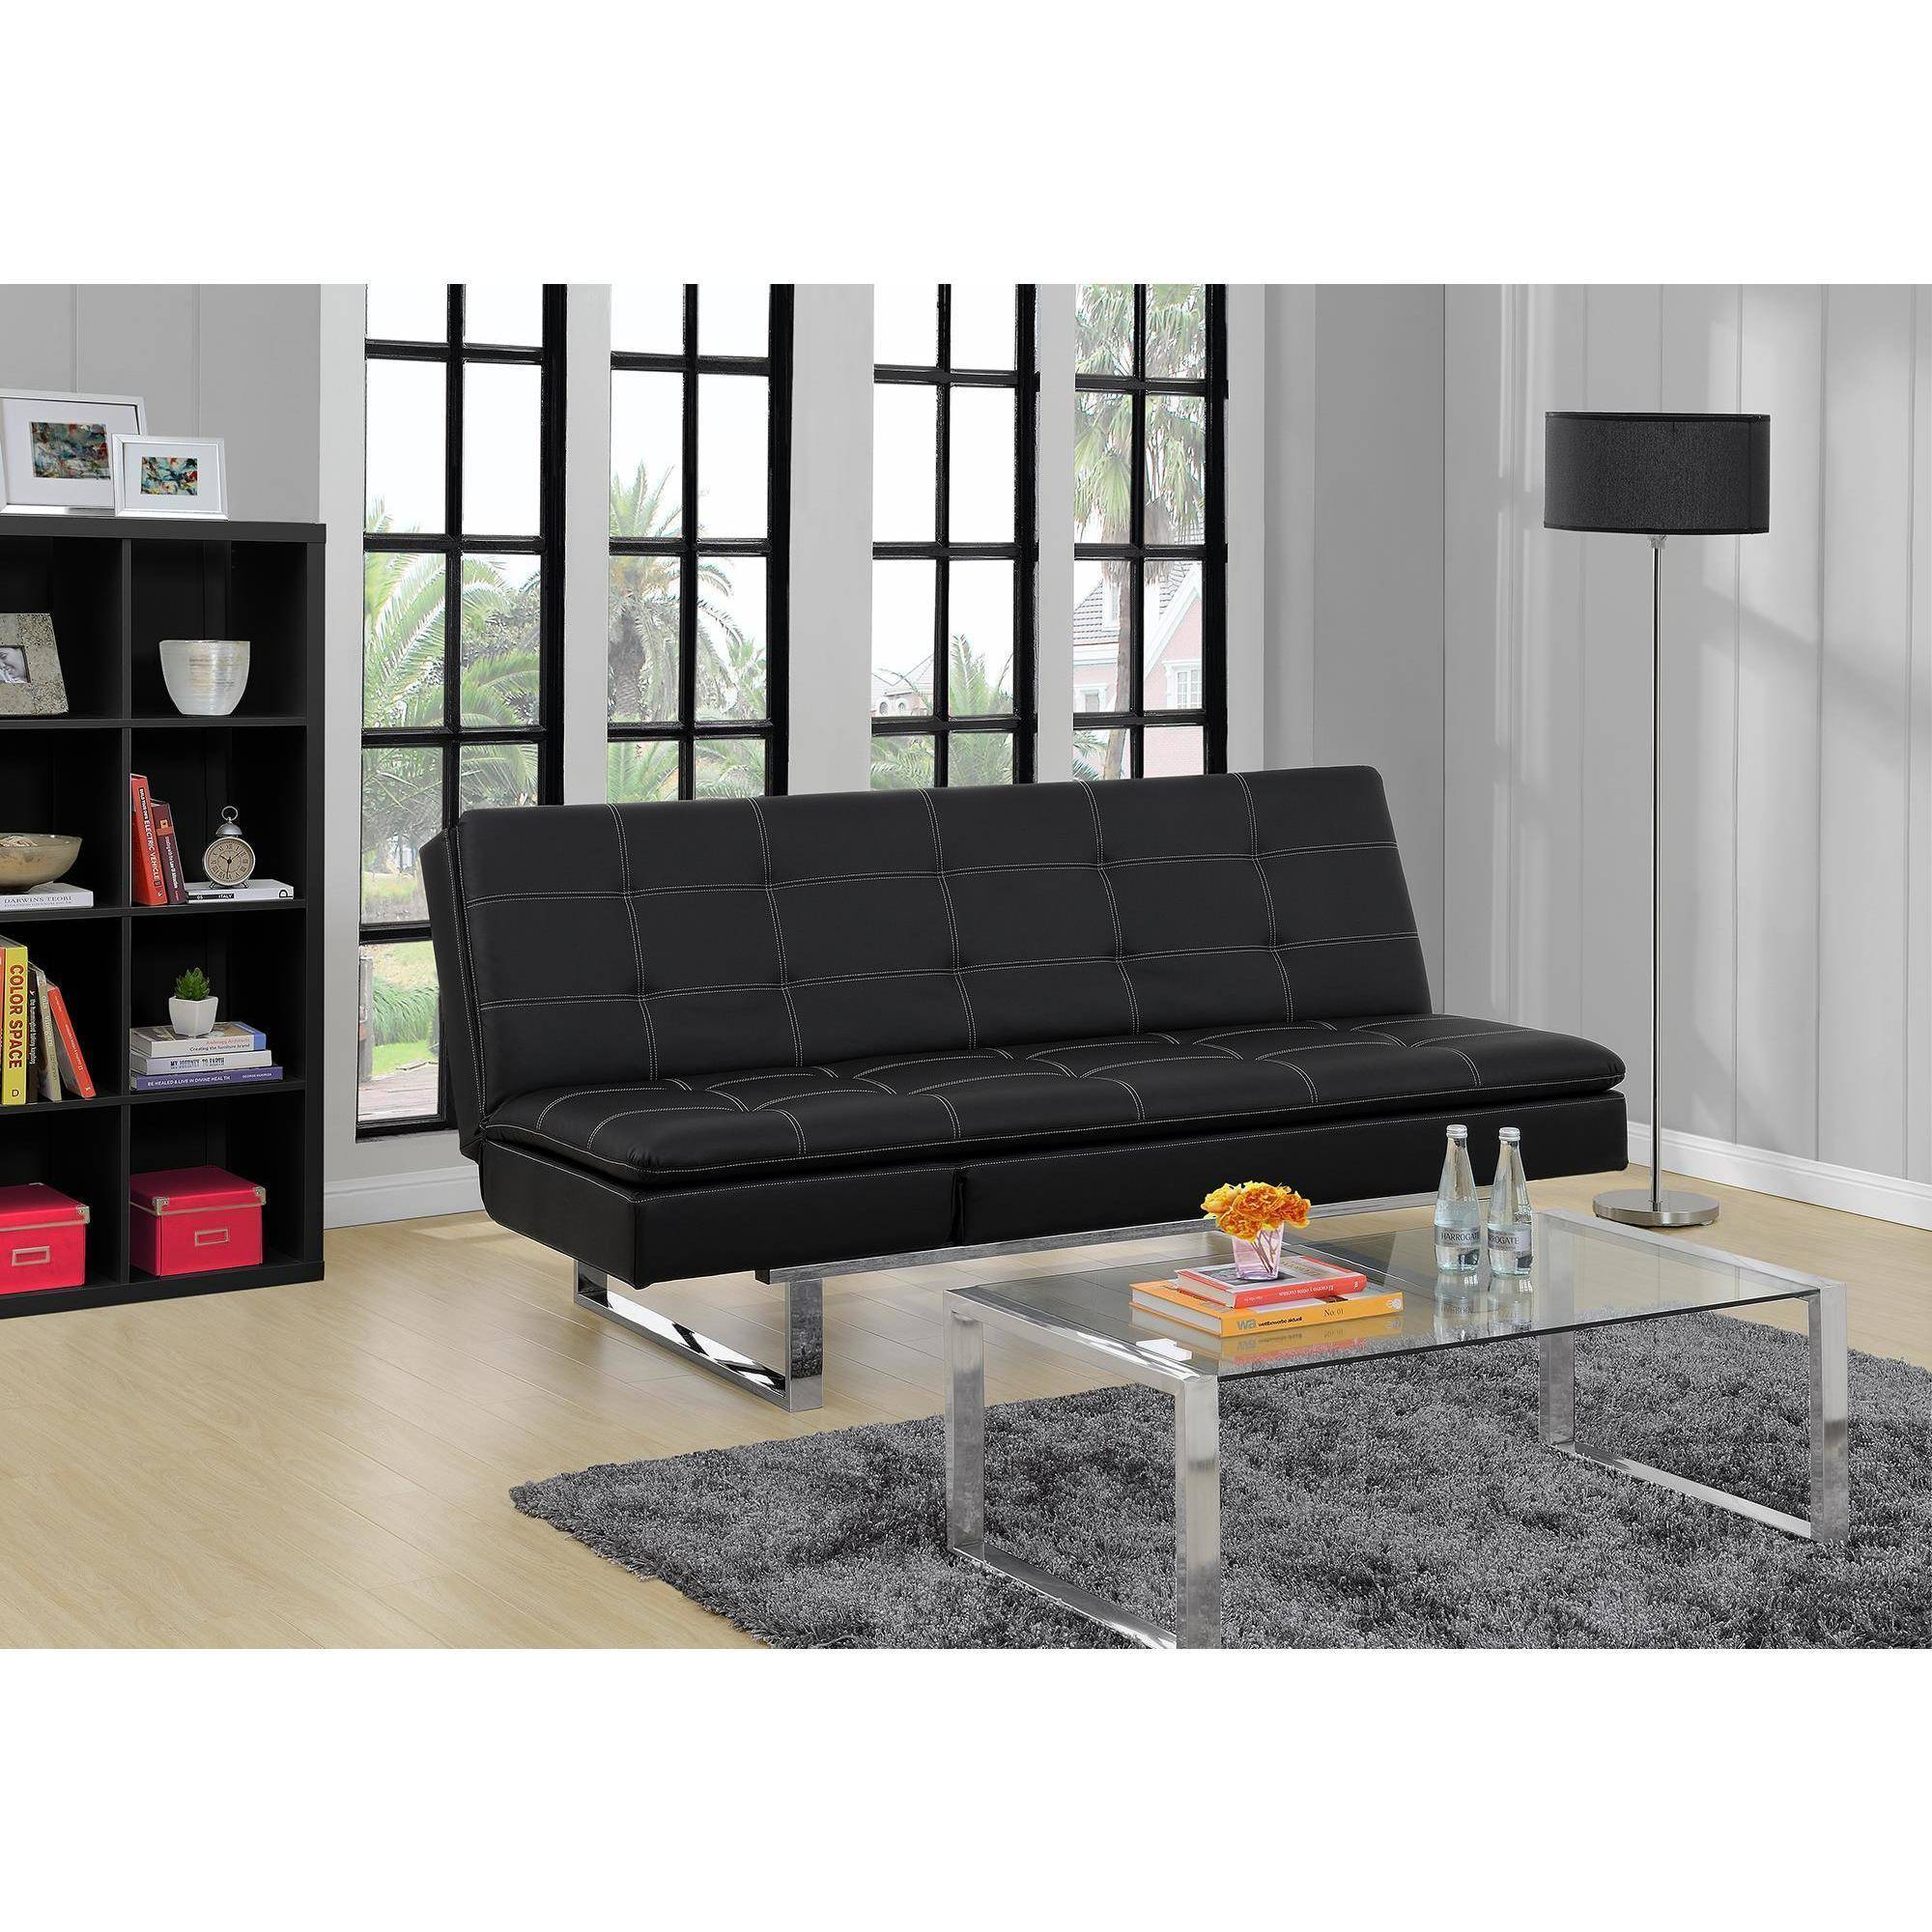 Dorel Home  Premium Lux Bonded Leather Pillowtop Futon Lounger, Black